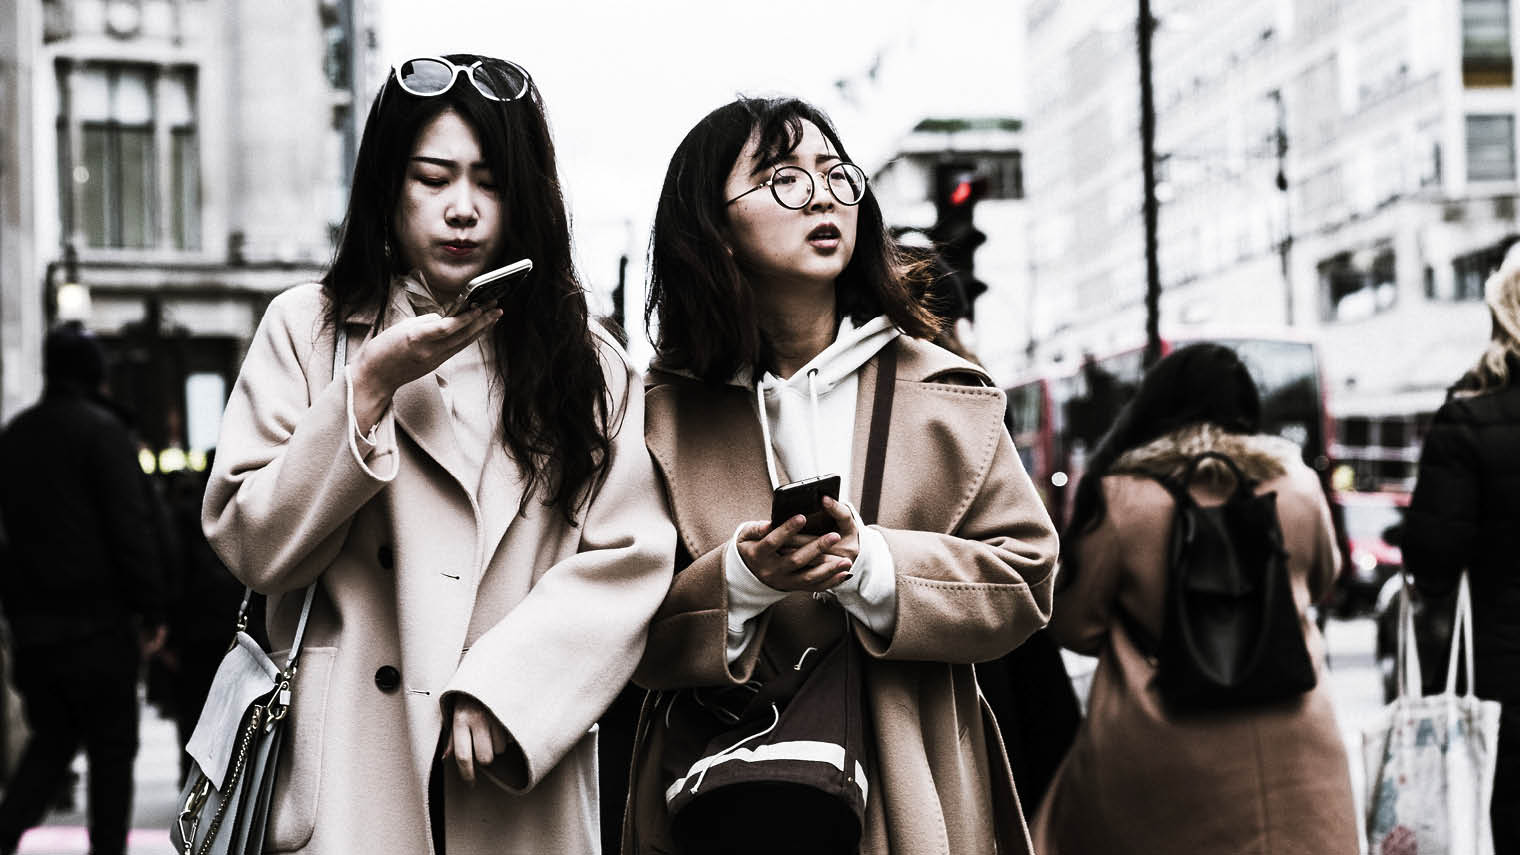 Women on oxford street using phones